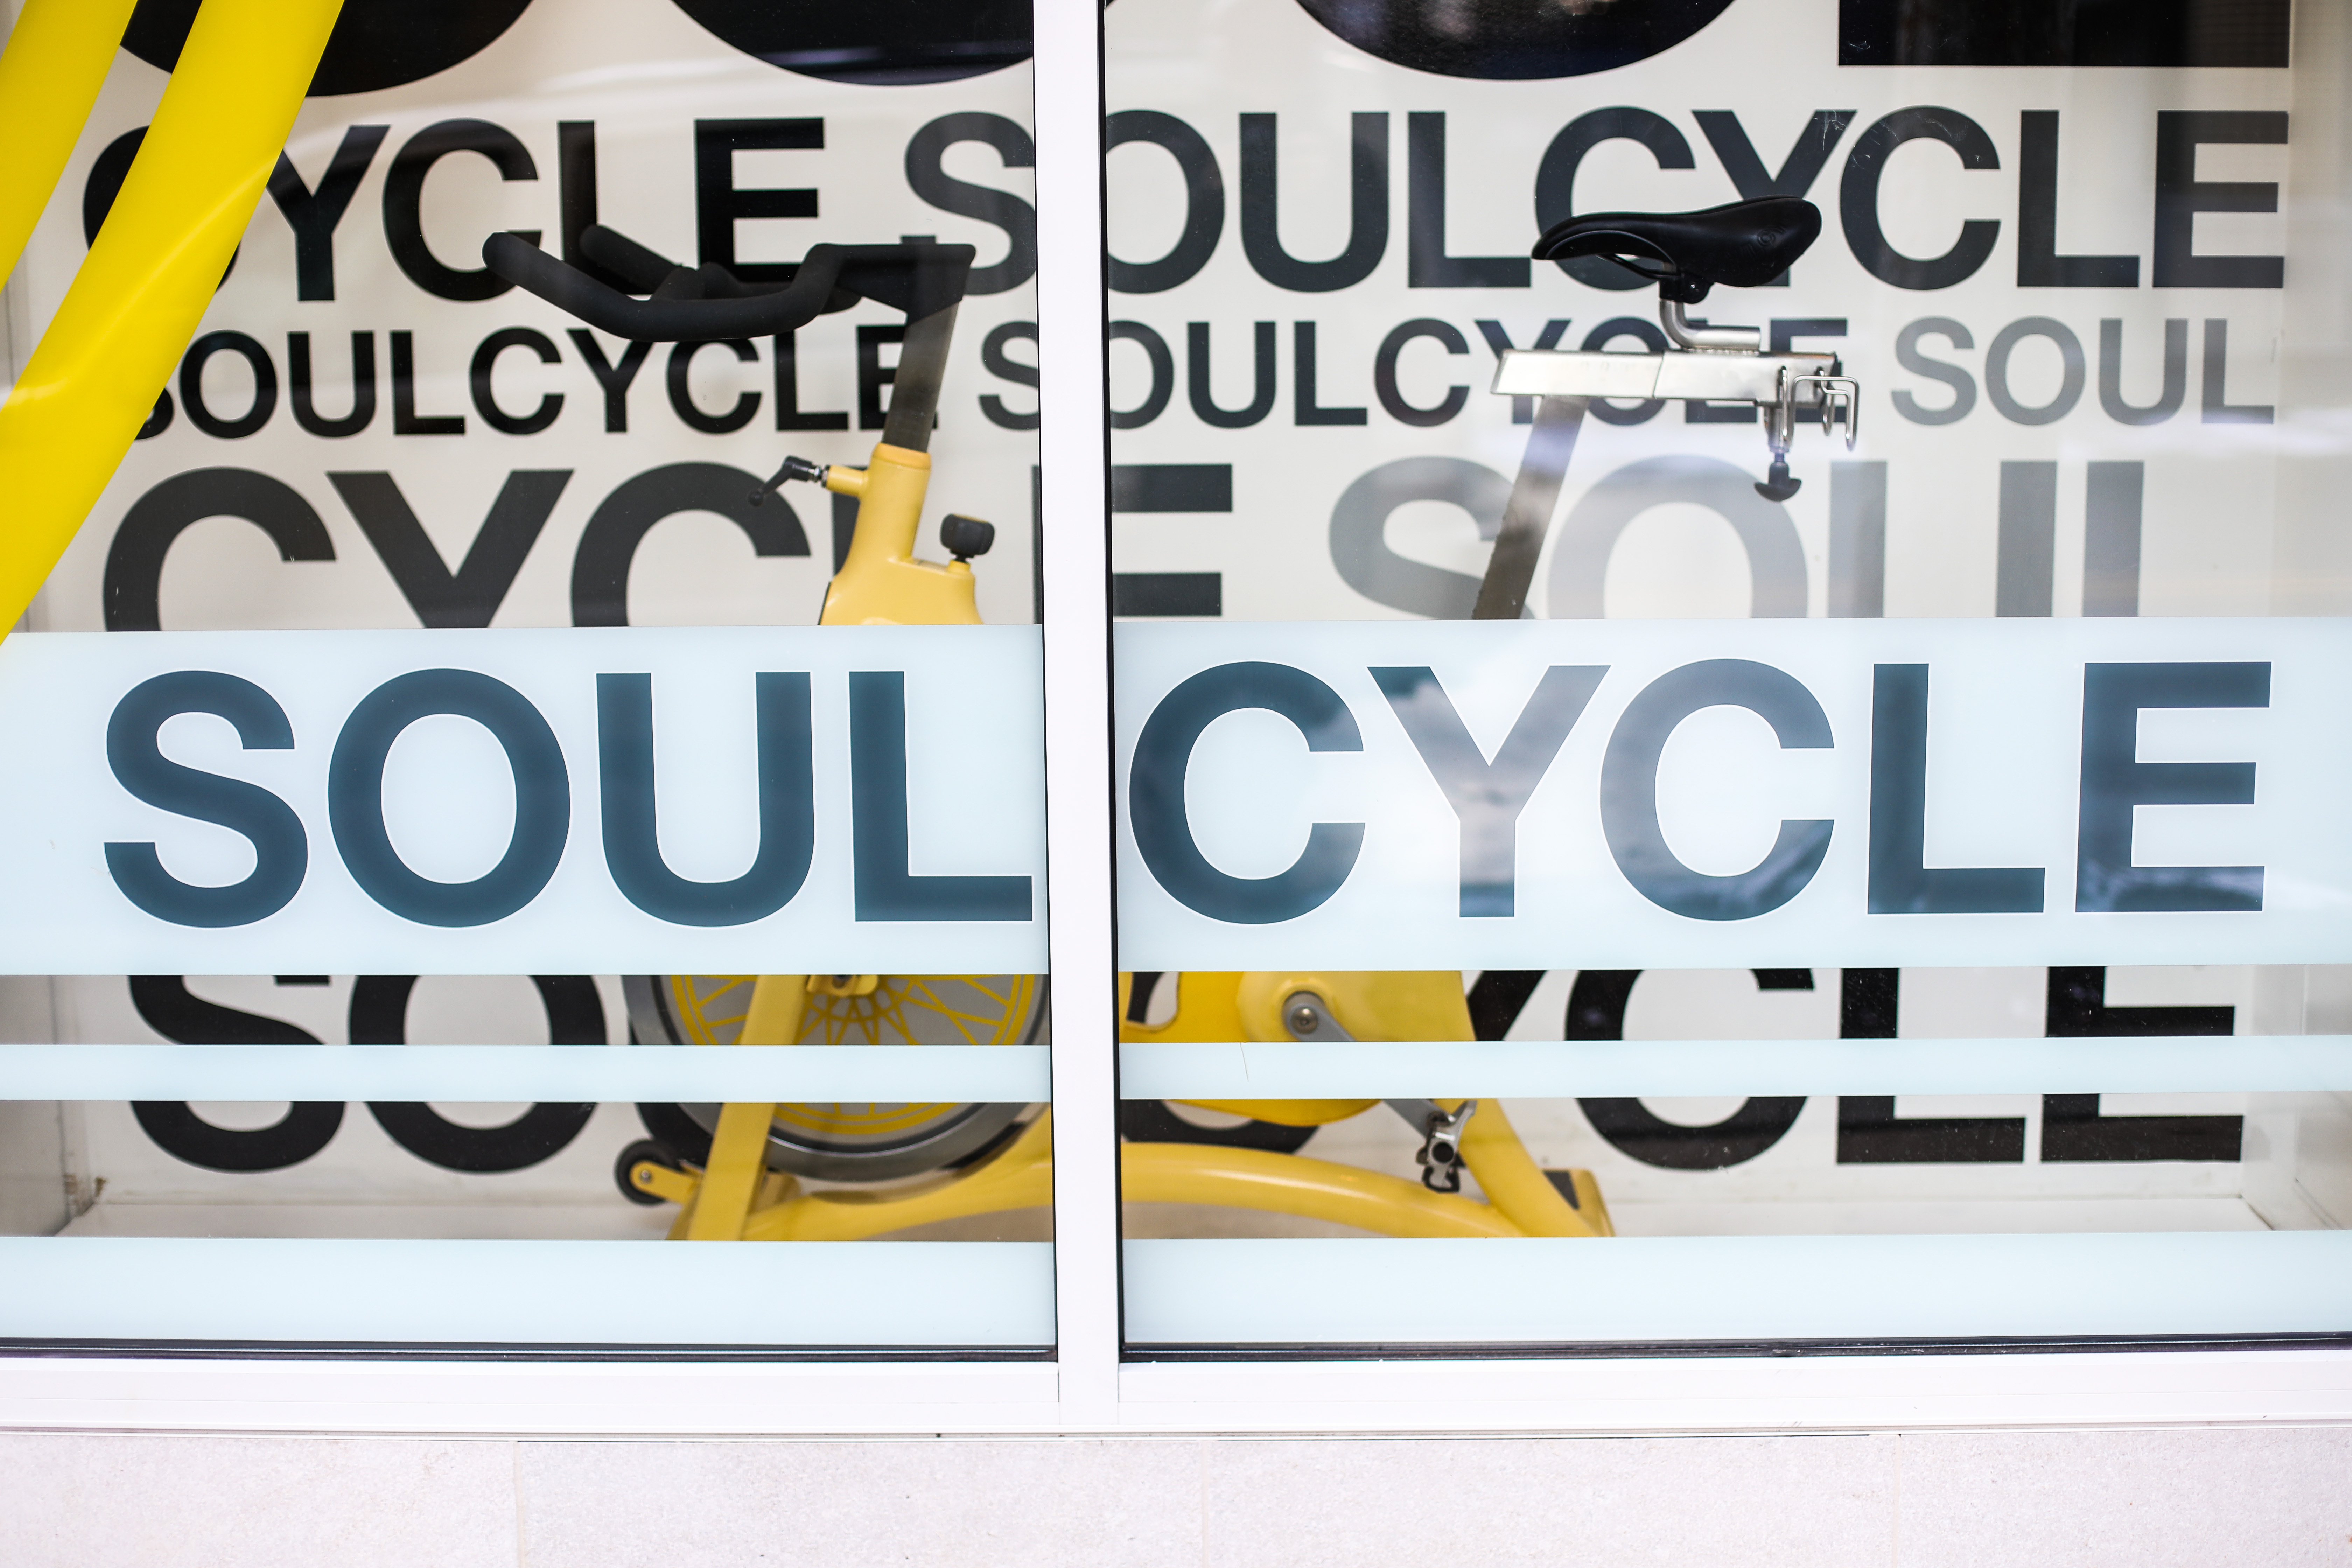 Outside of SoulCycle studio